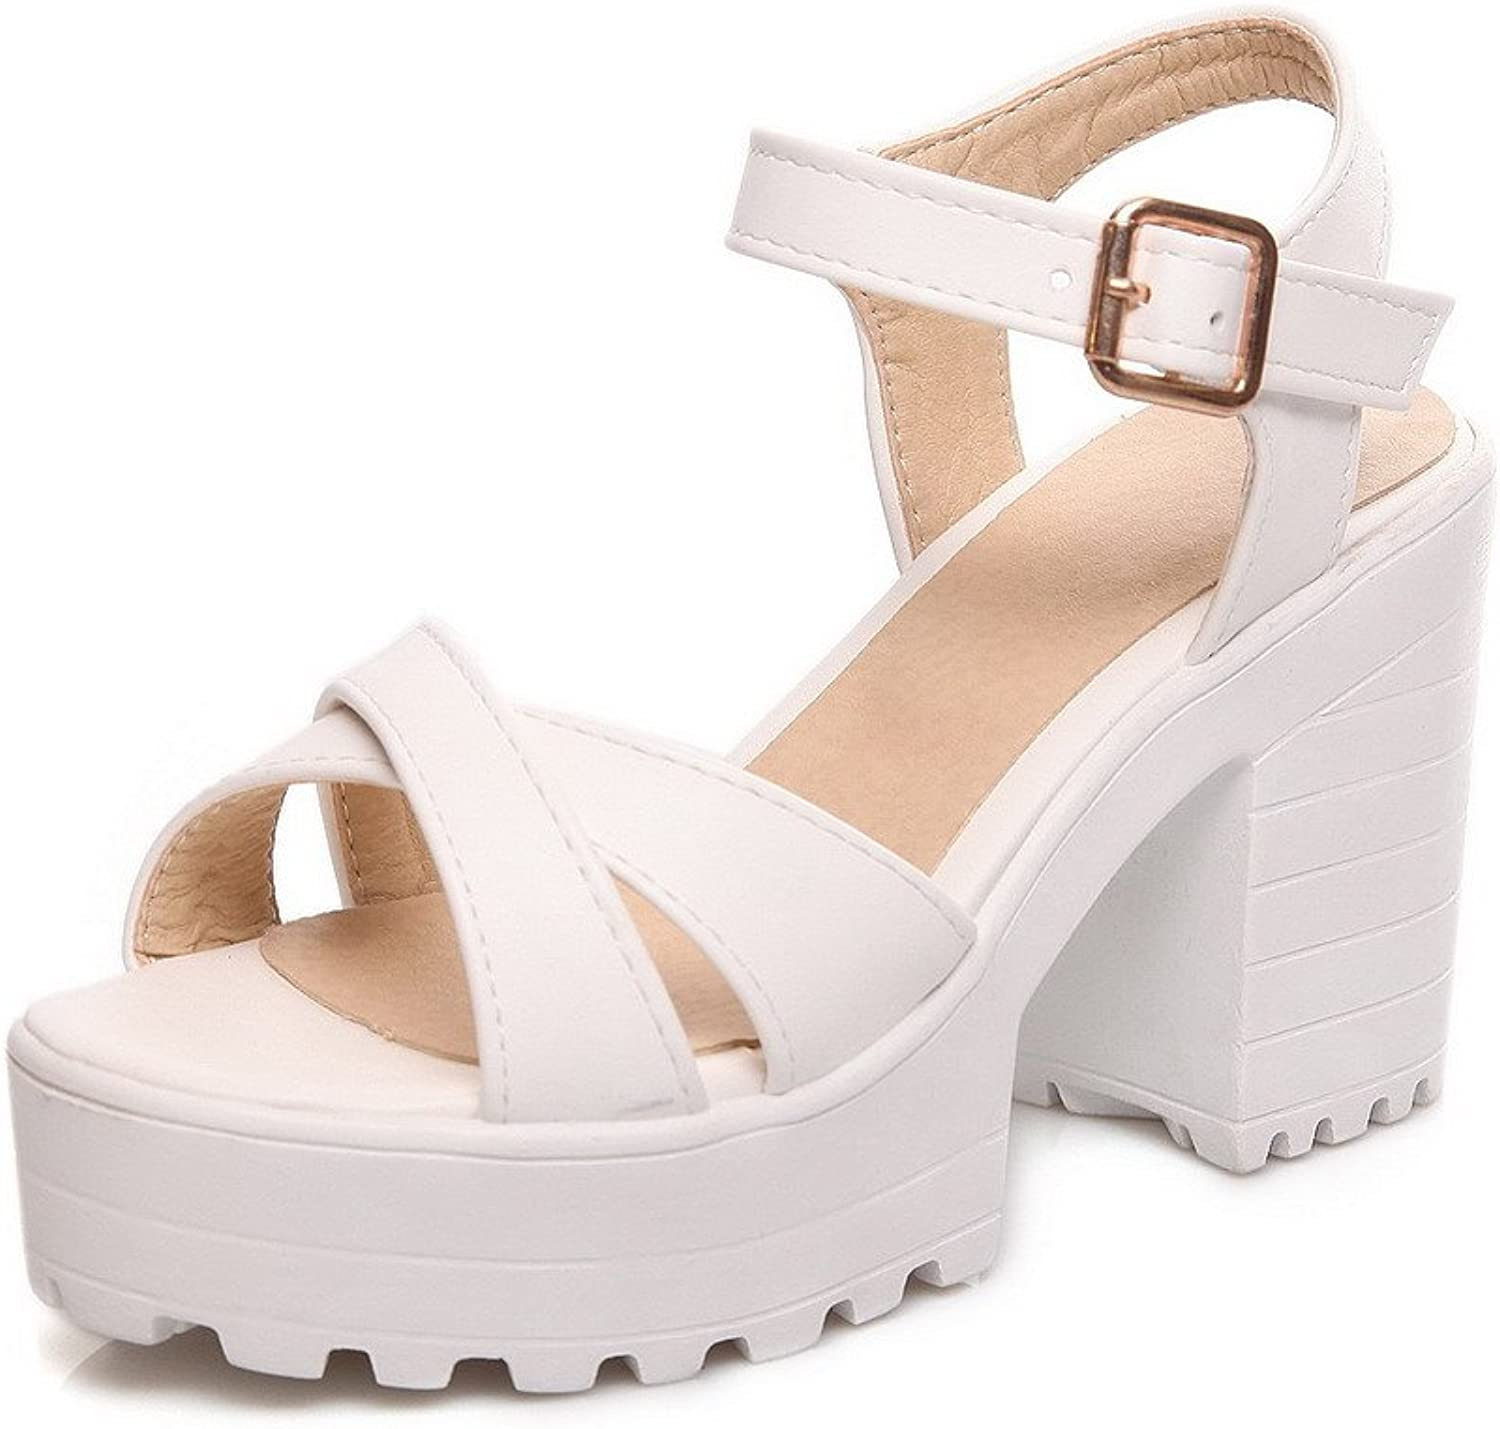 AllhqFashion Women's High Heels Solid Buckle Soft Leather Open Toe Heeled-Sandals